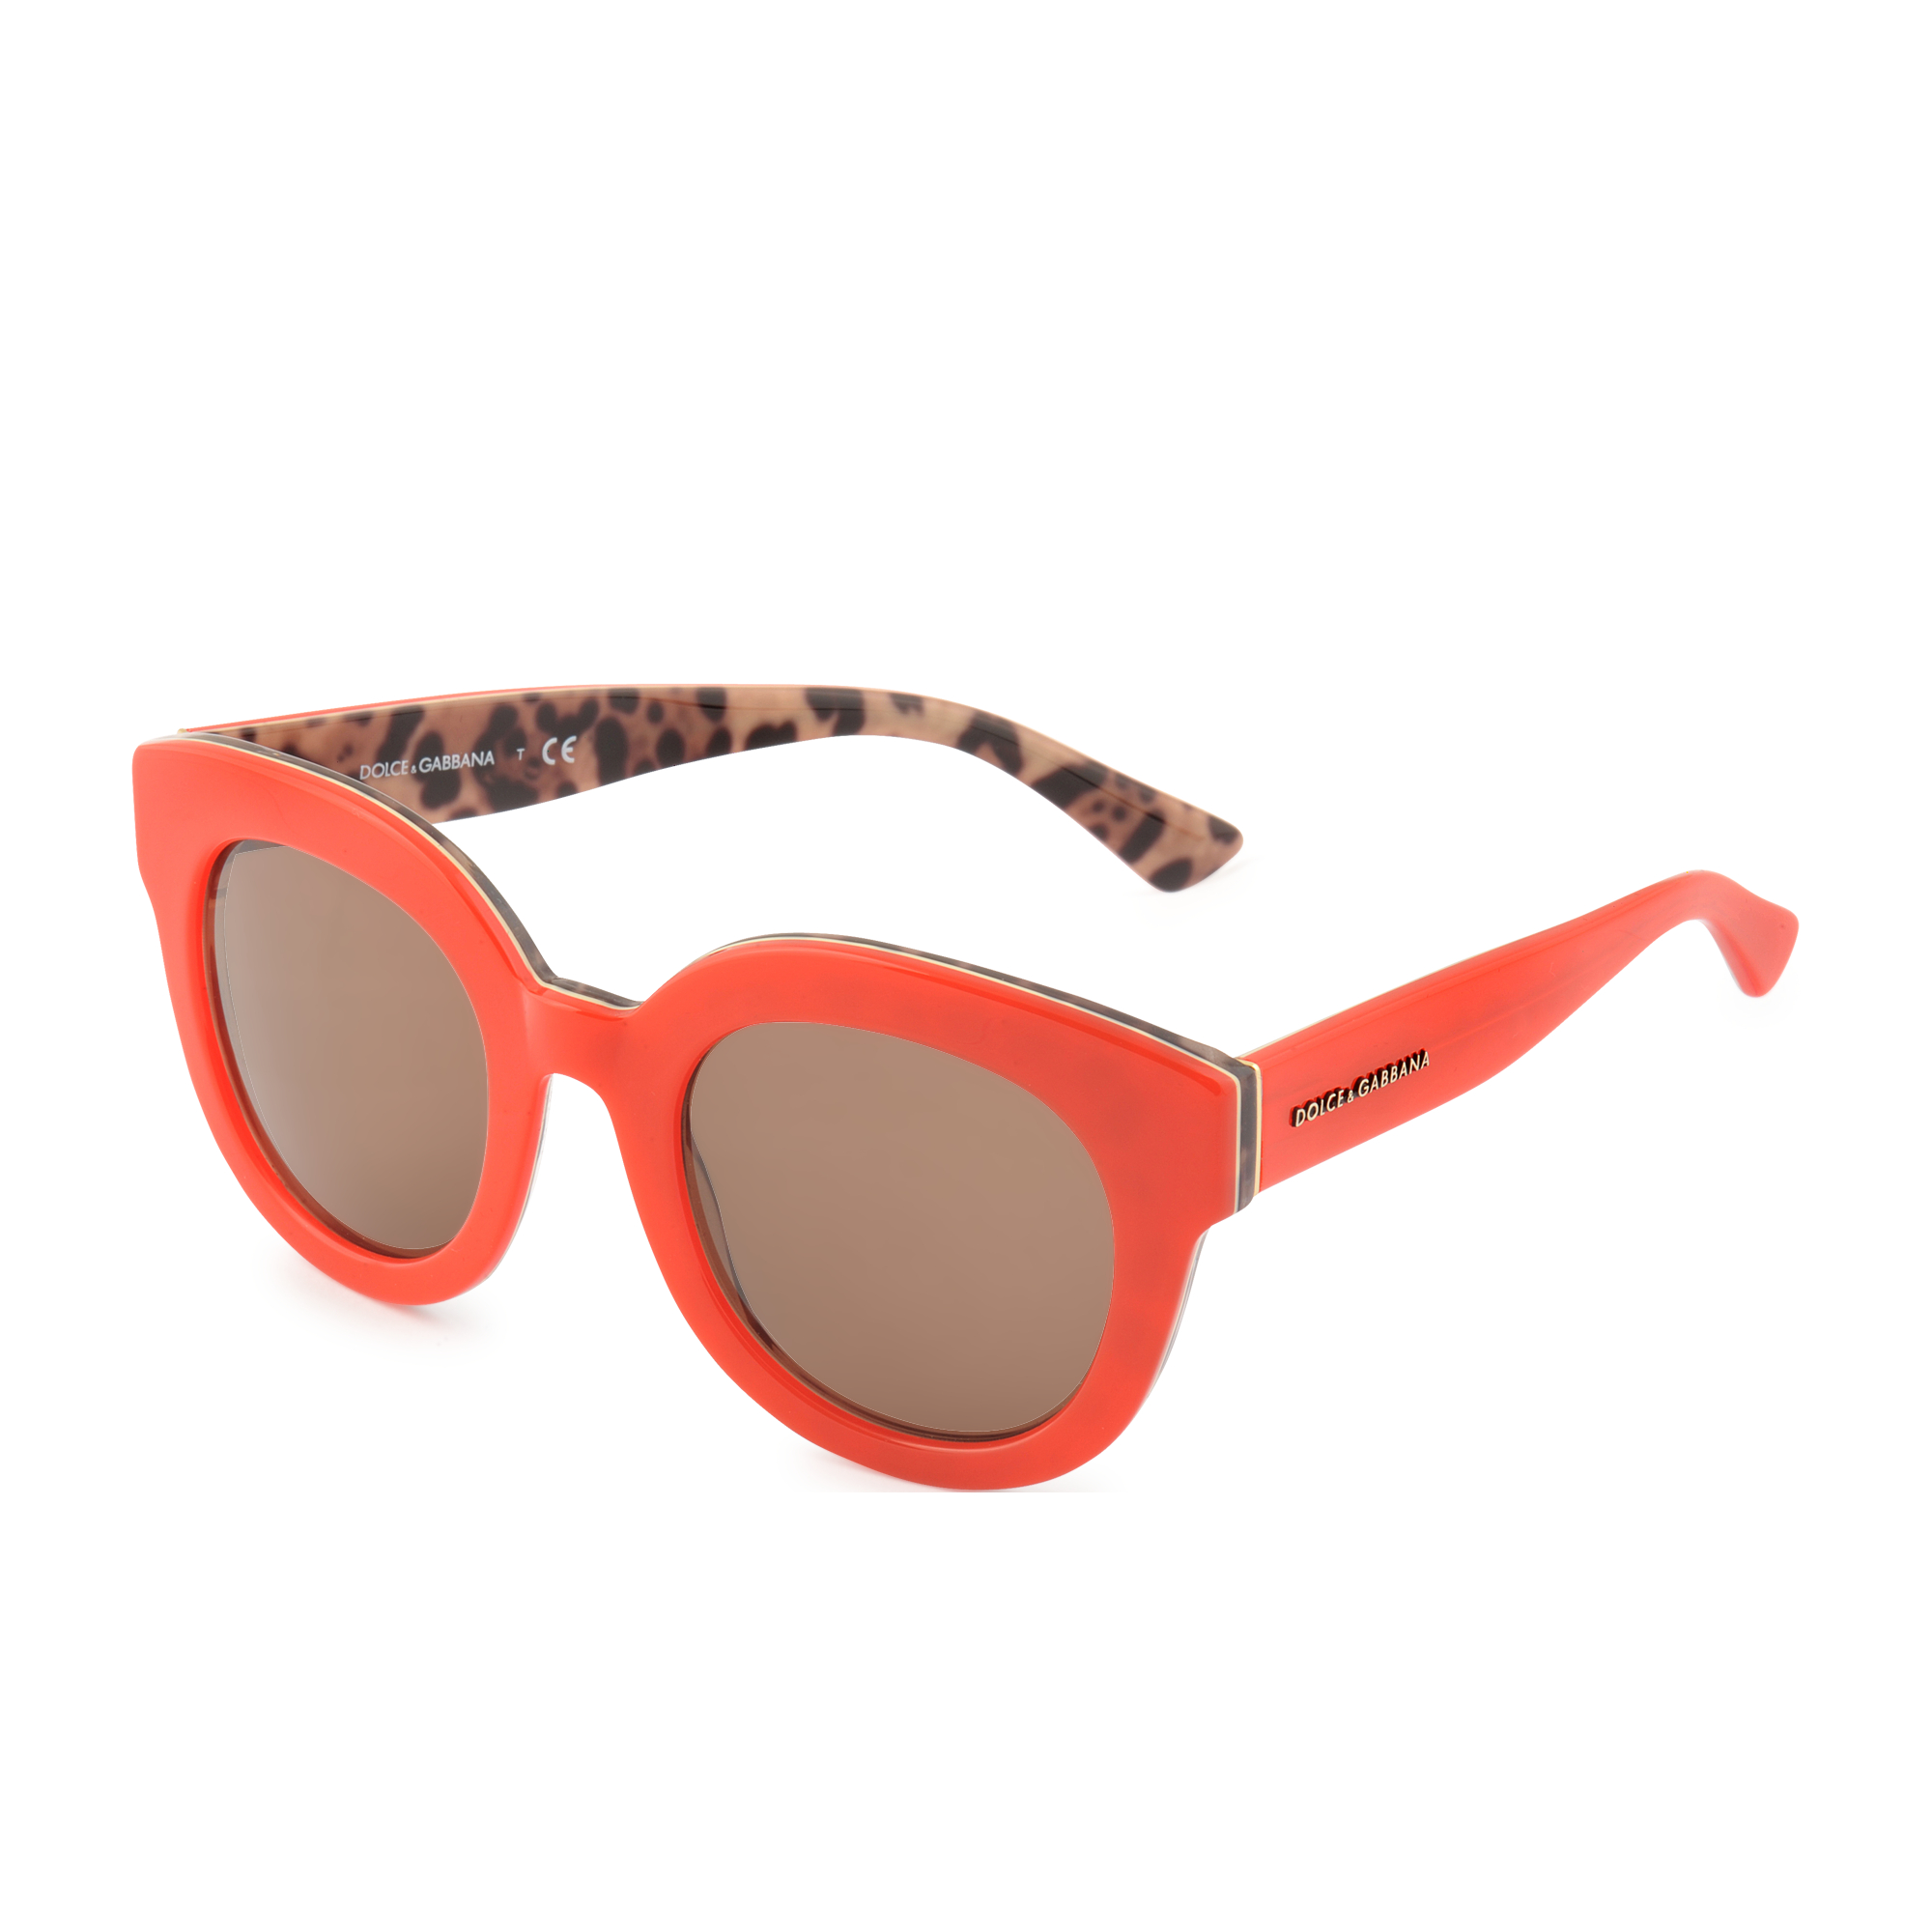 44f7ef19ba4 Dolce And Gabbana Sunglasses Black And Orange